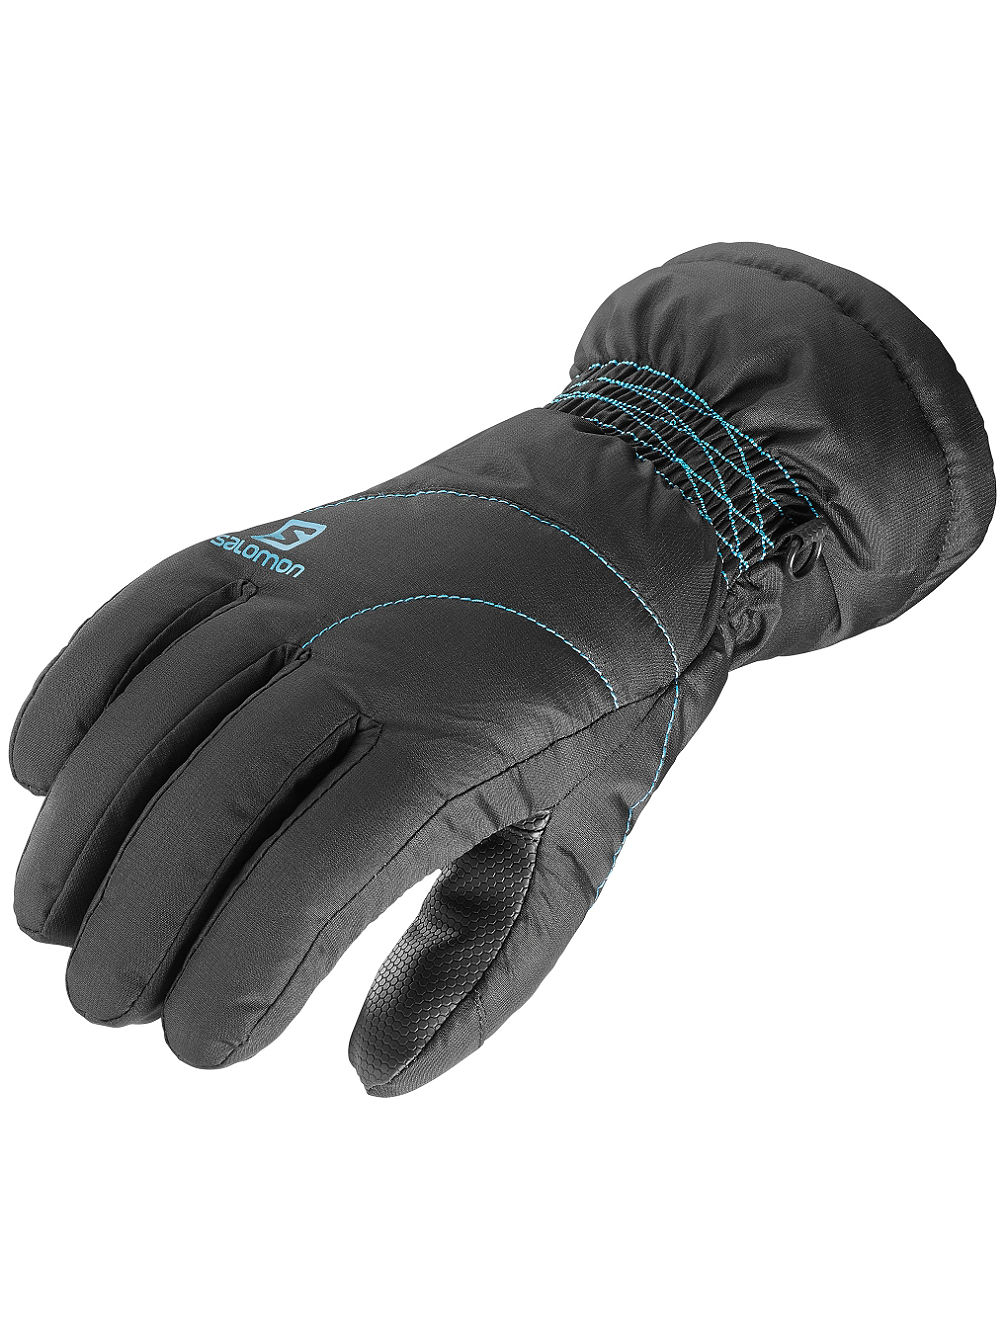 cruise-gloves